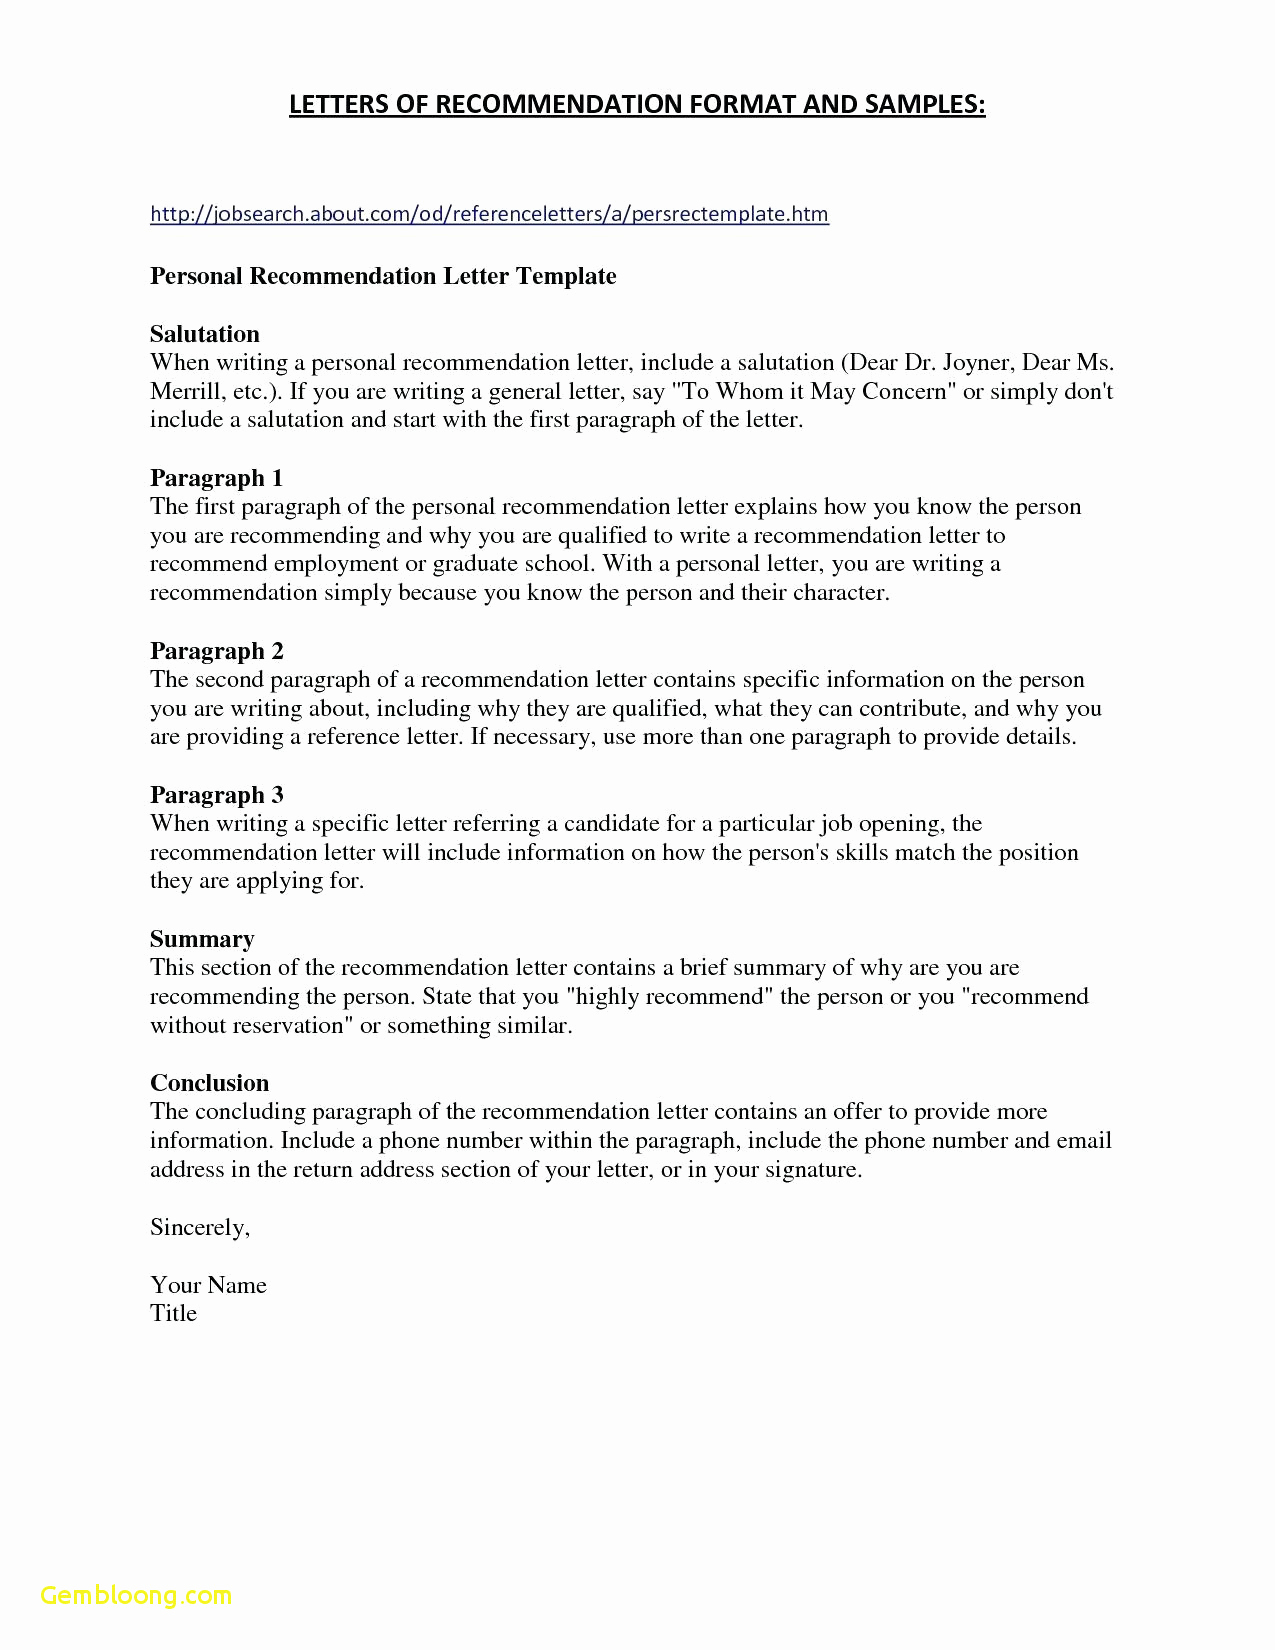 personal recommendation letter template example-Personal Re mendation Letter for Employment Lovely References for Resume Template New Reference Letter format In Hindi 15-j